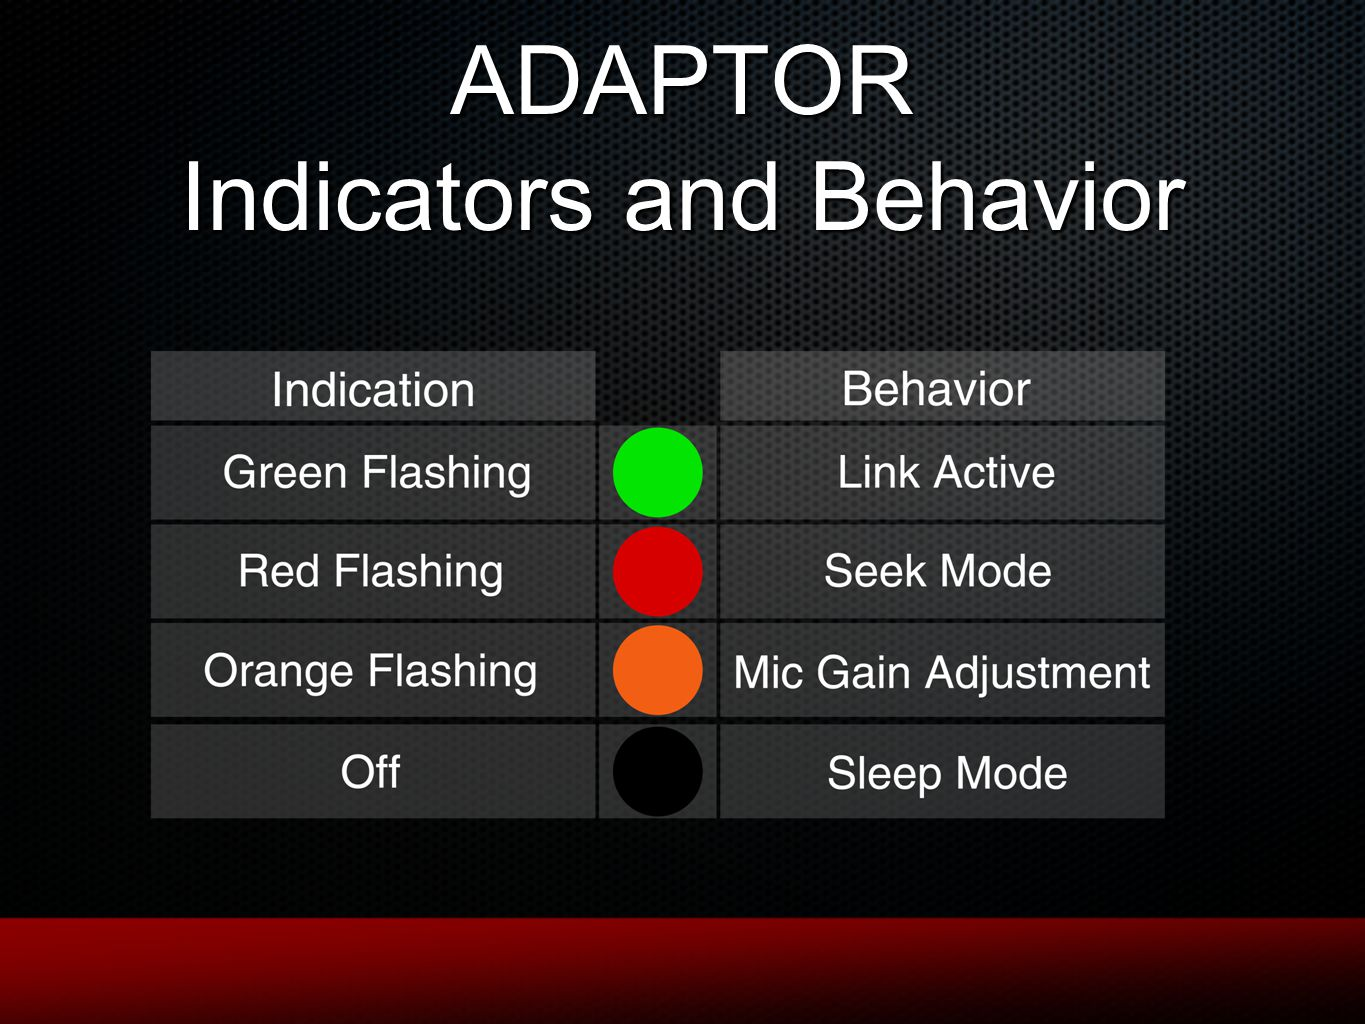 ADAPTOR Indicators and Behavior